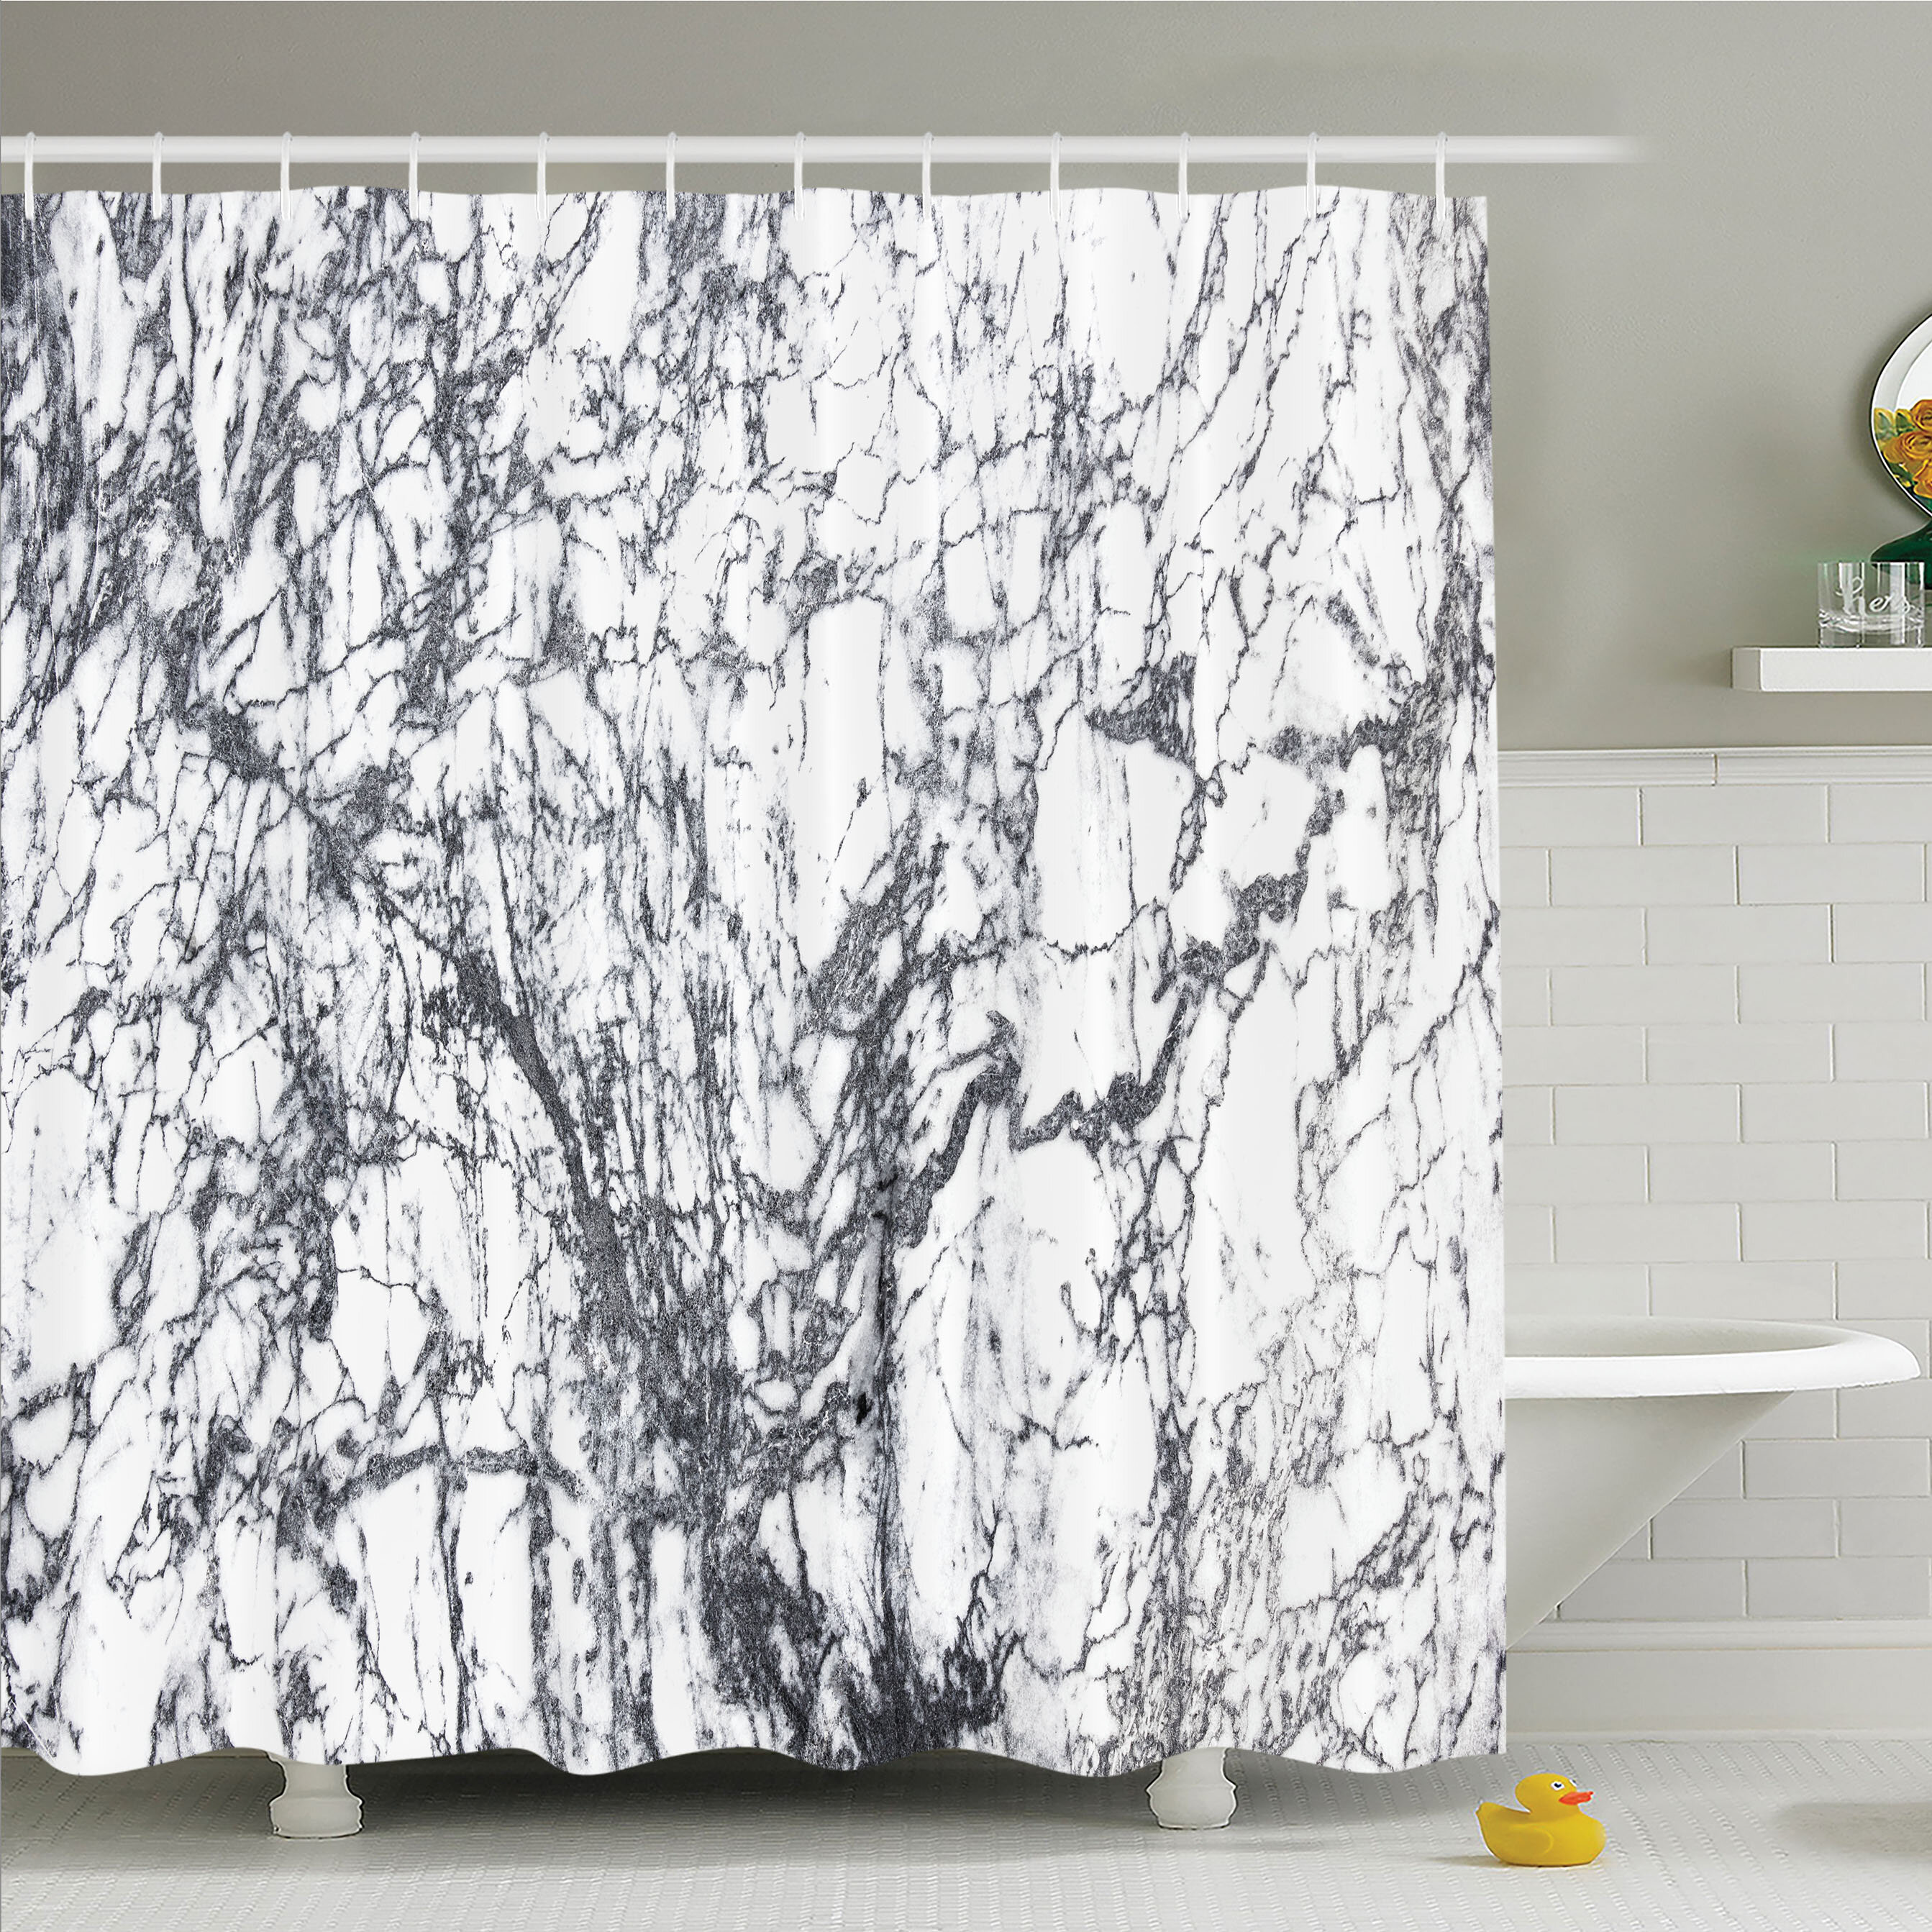 East Urban Home Murky Marble Rock Motifs With Dynamic Fractal